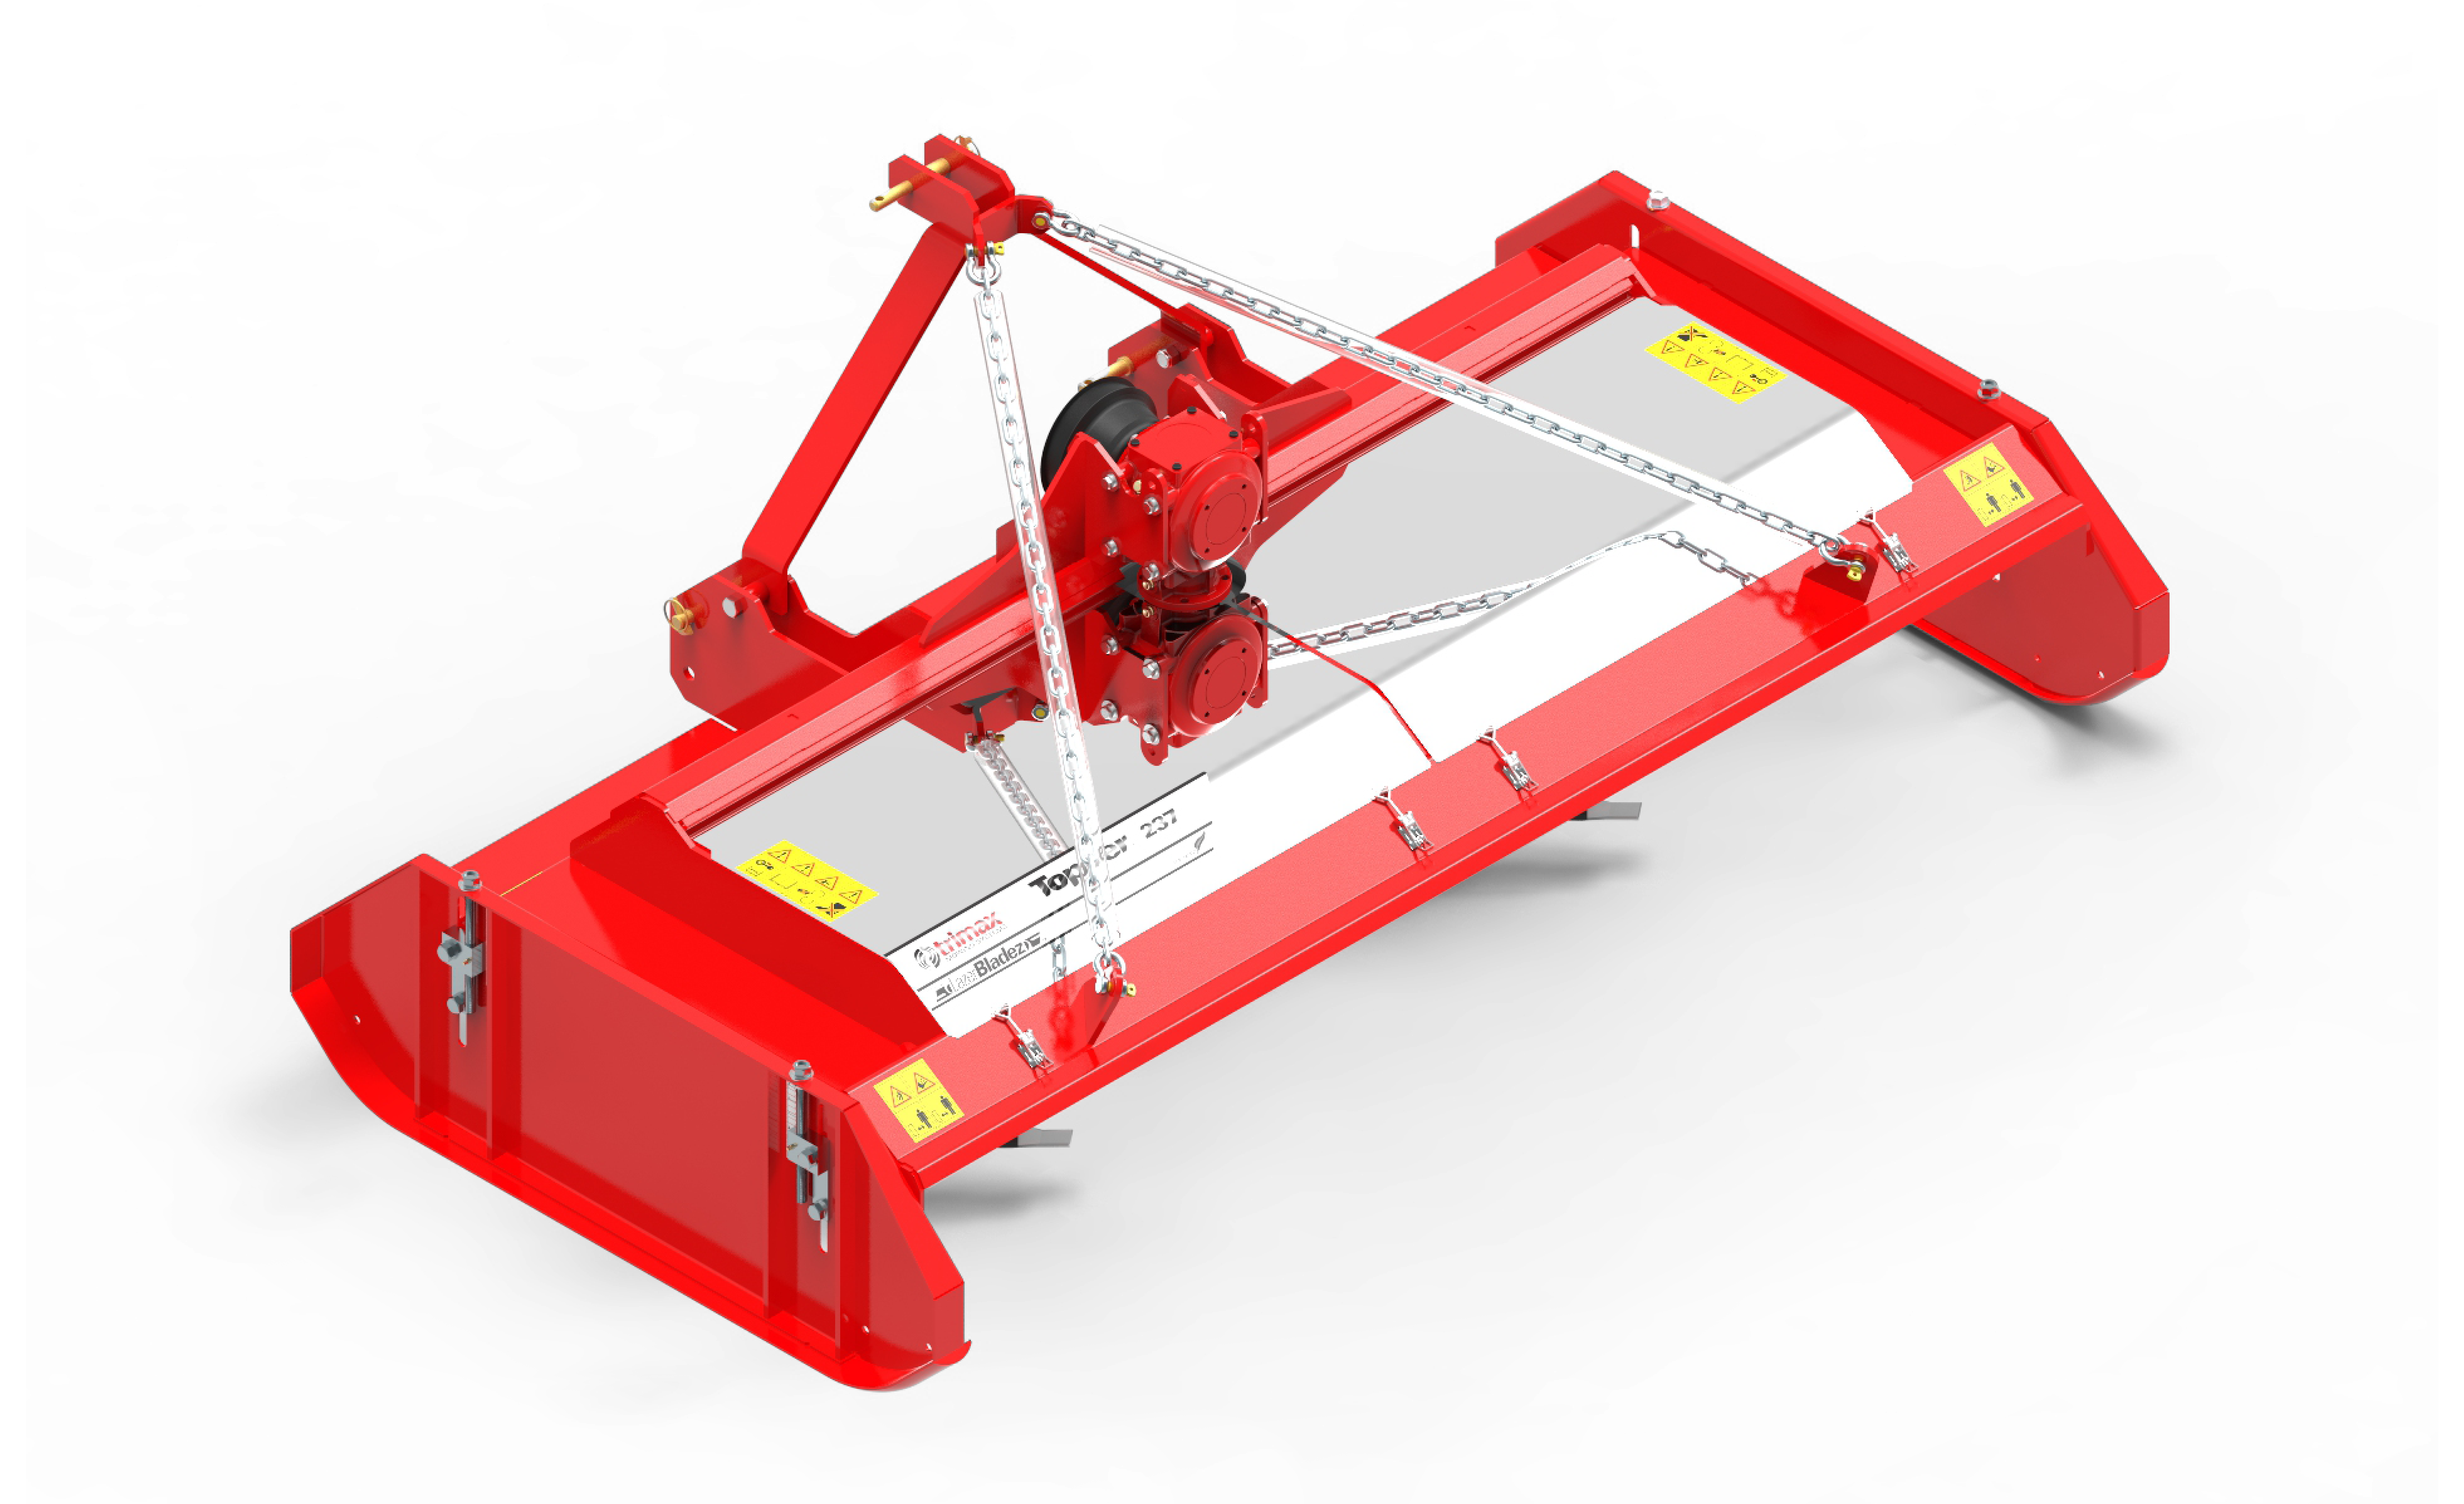 Topper 237 Mower Red